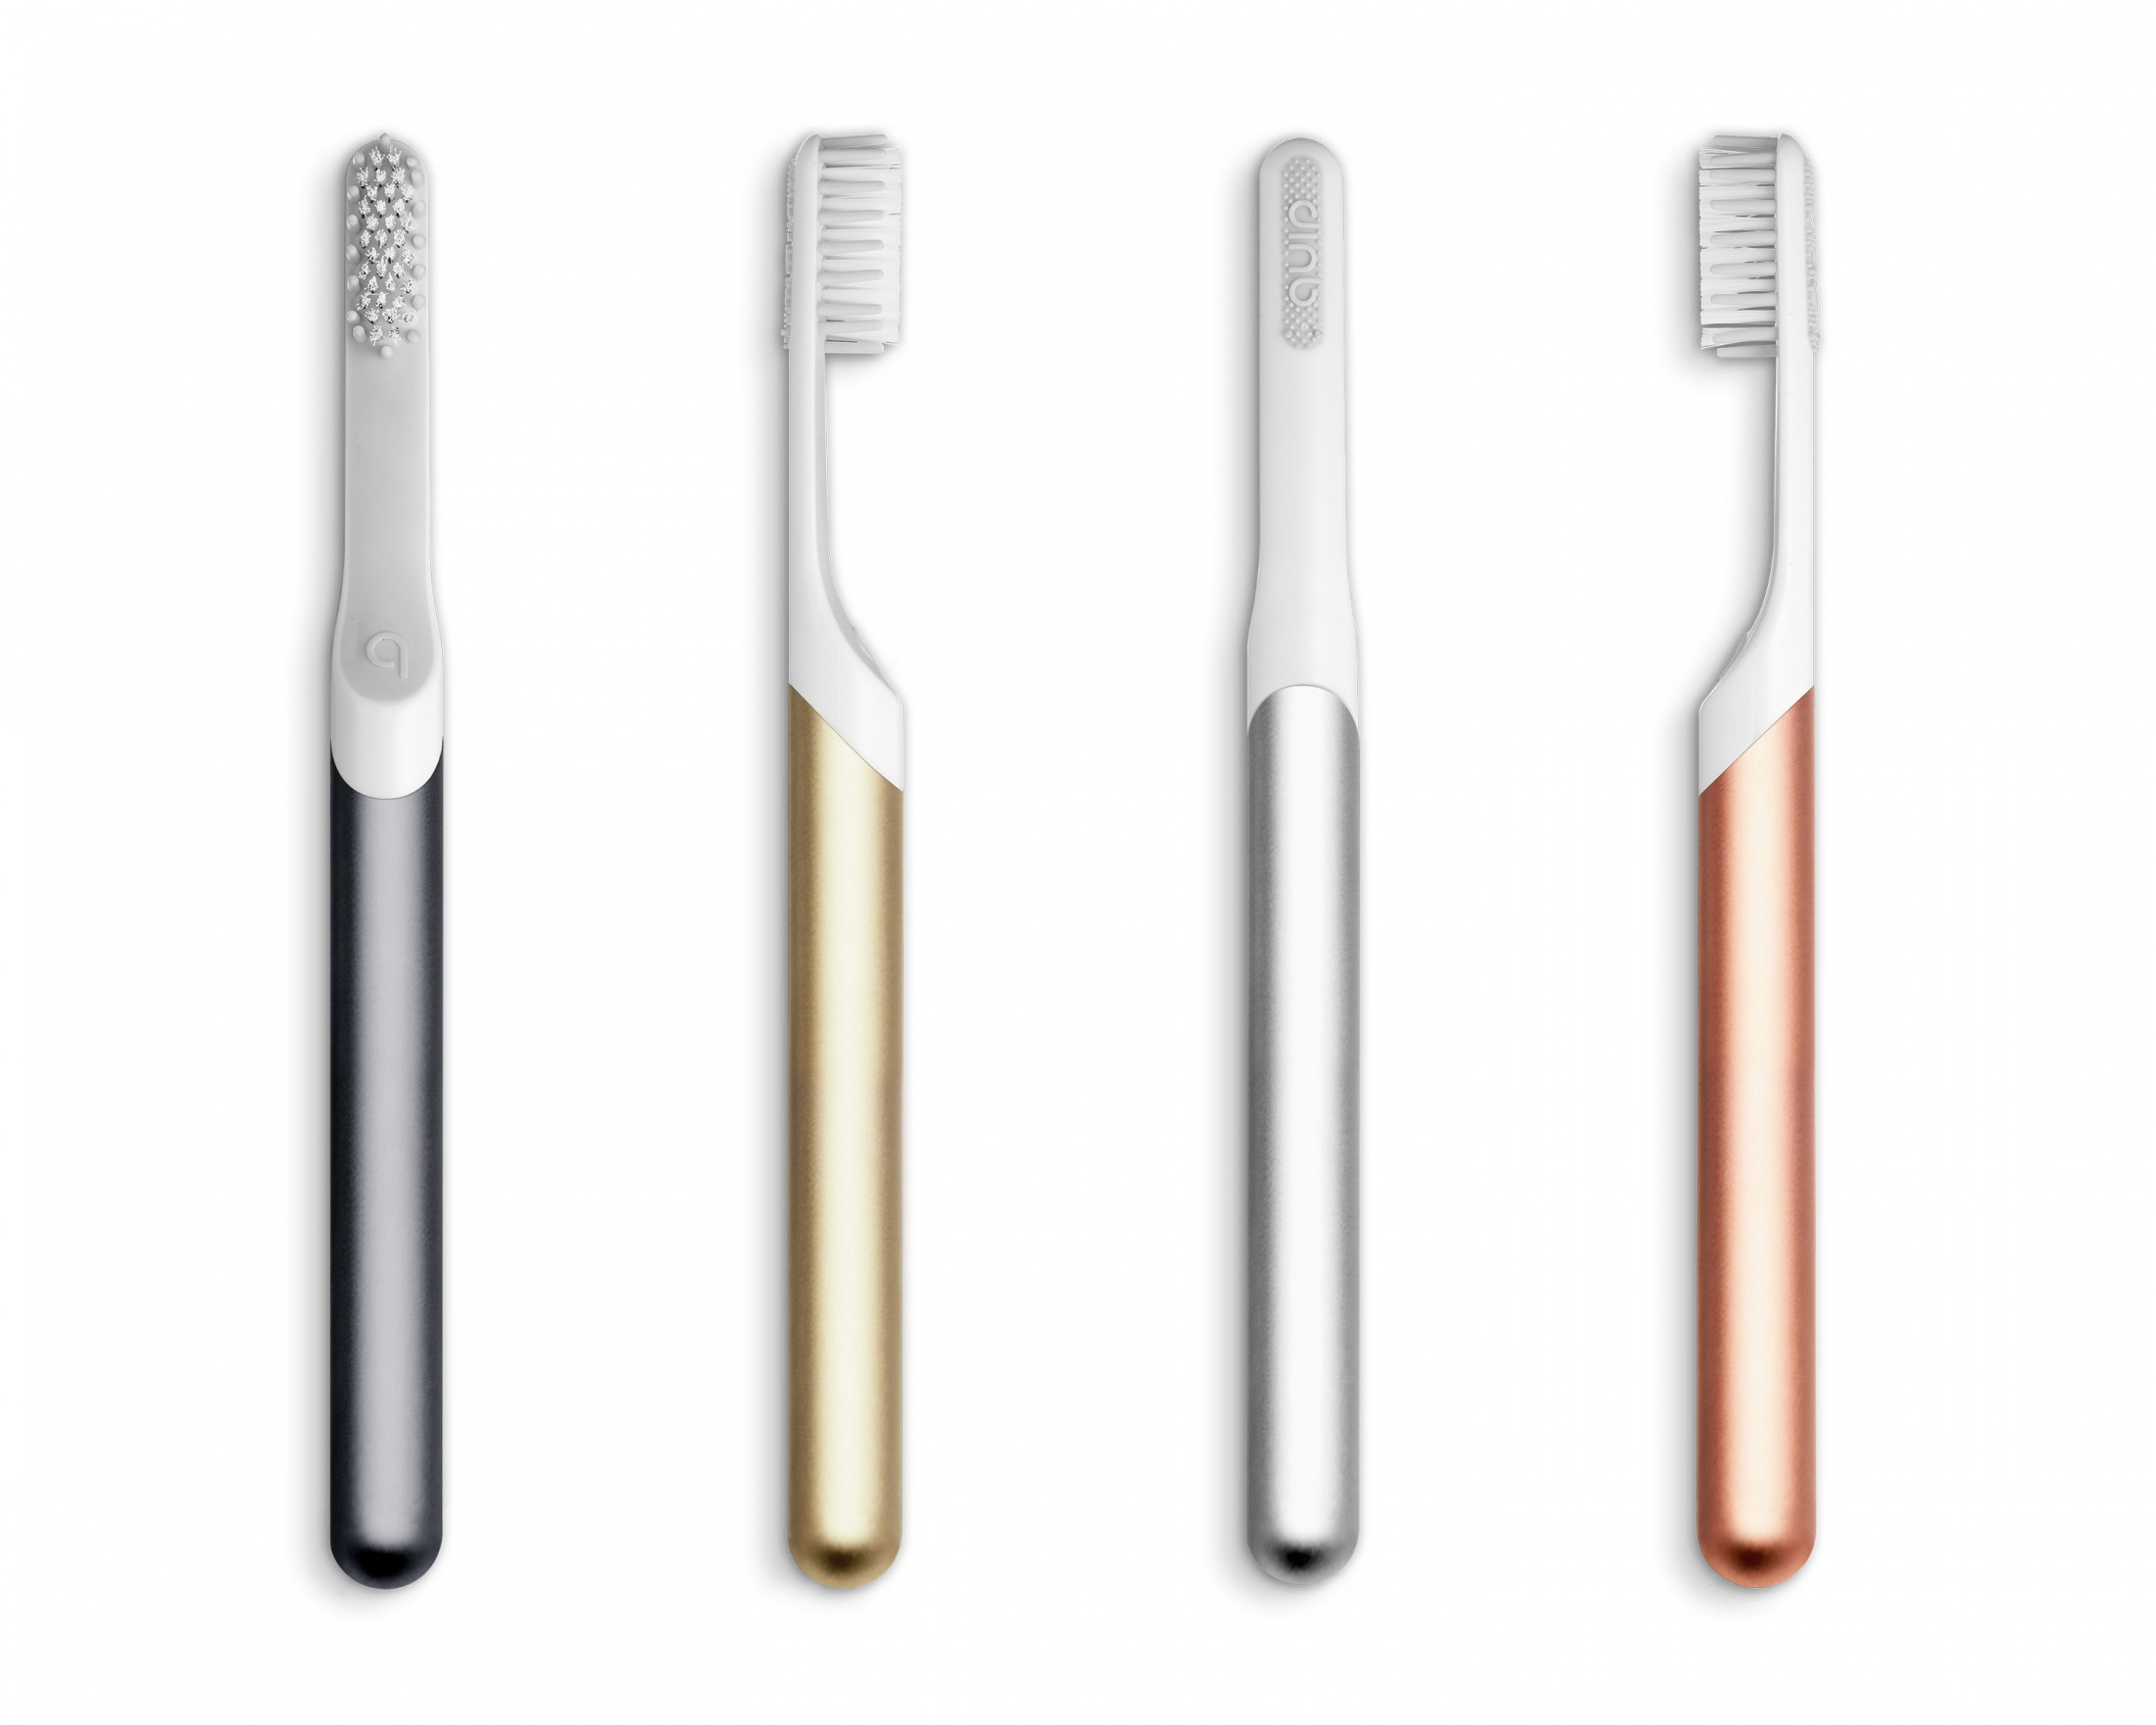 Thumbnail for quip electric toothbrush